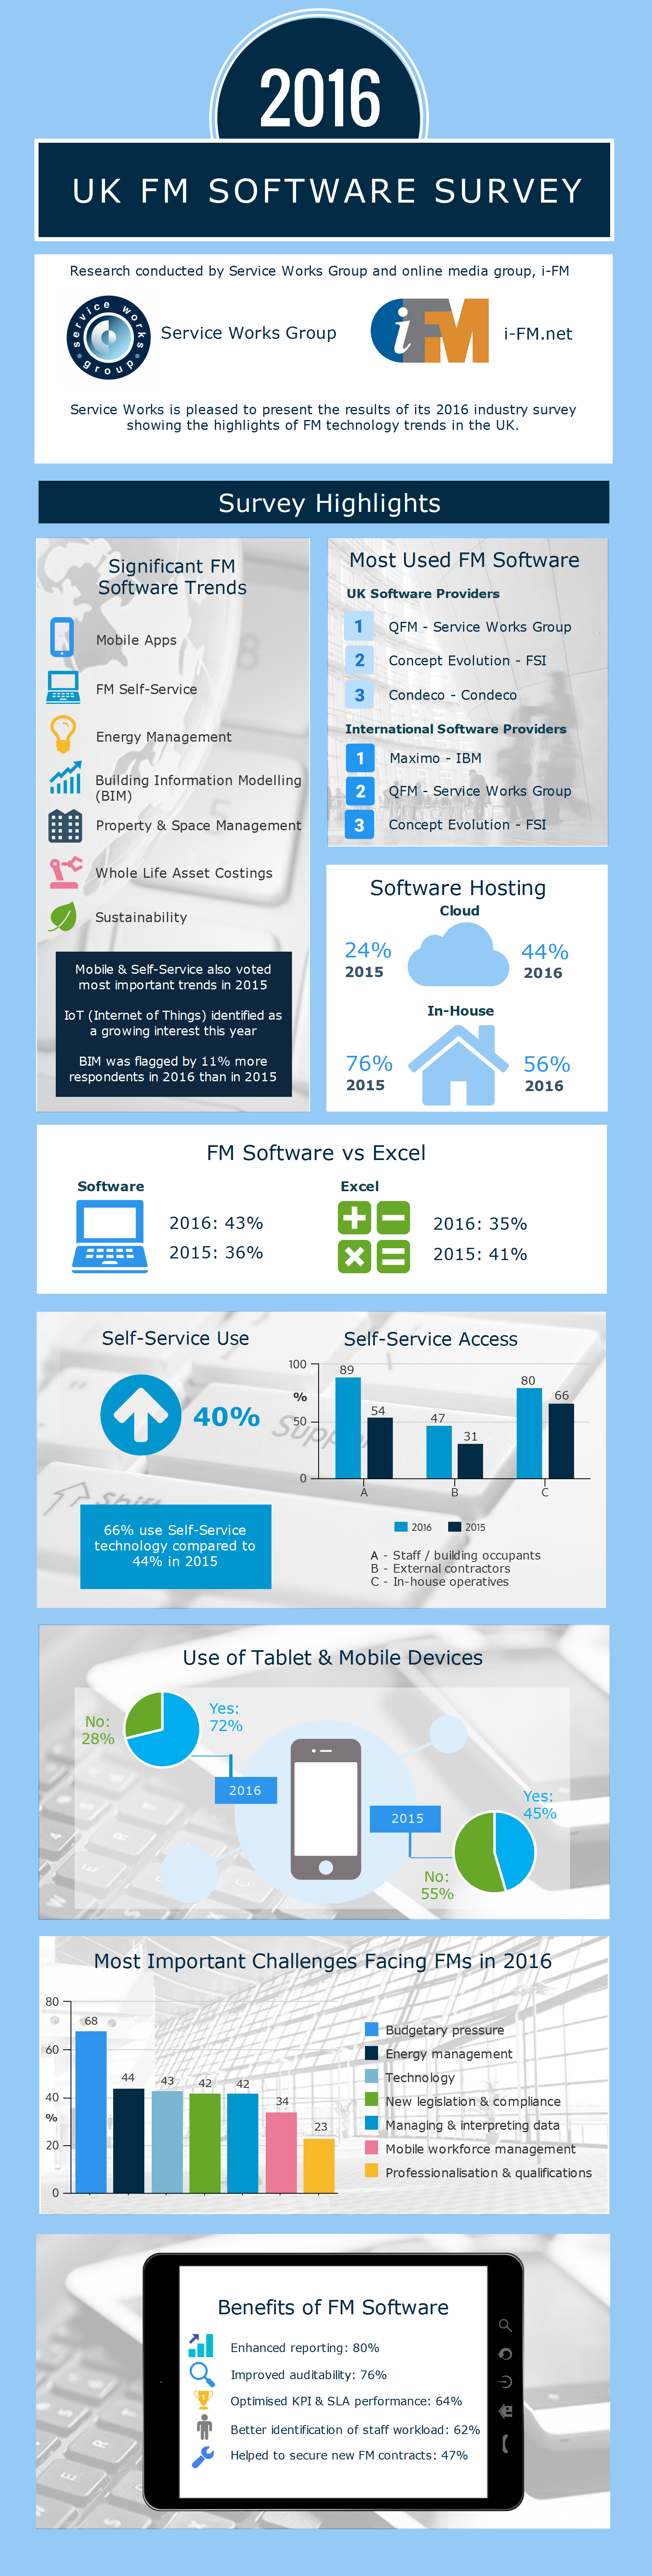 UK Software Survey 2016 Highlights - Mobile, Self-Service, and Benefits of FM Software